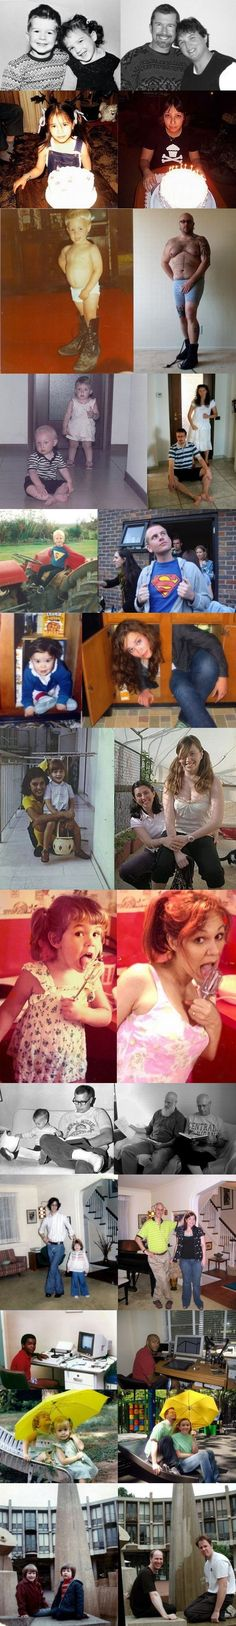 Recreating childhood photos...hilarious! fun gift idea for mom and dad..